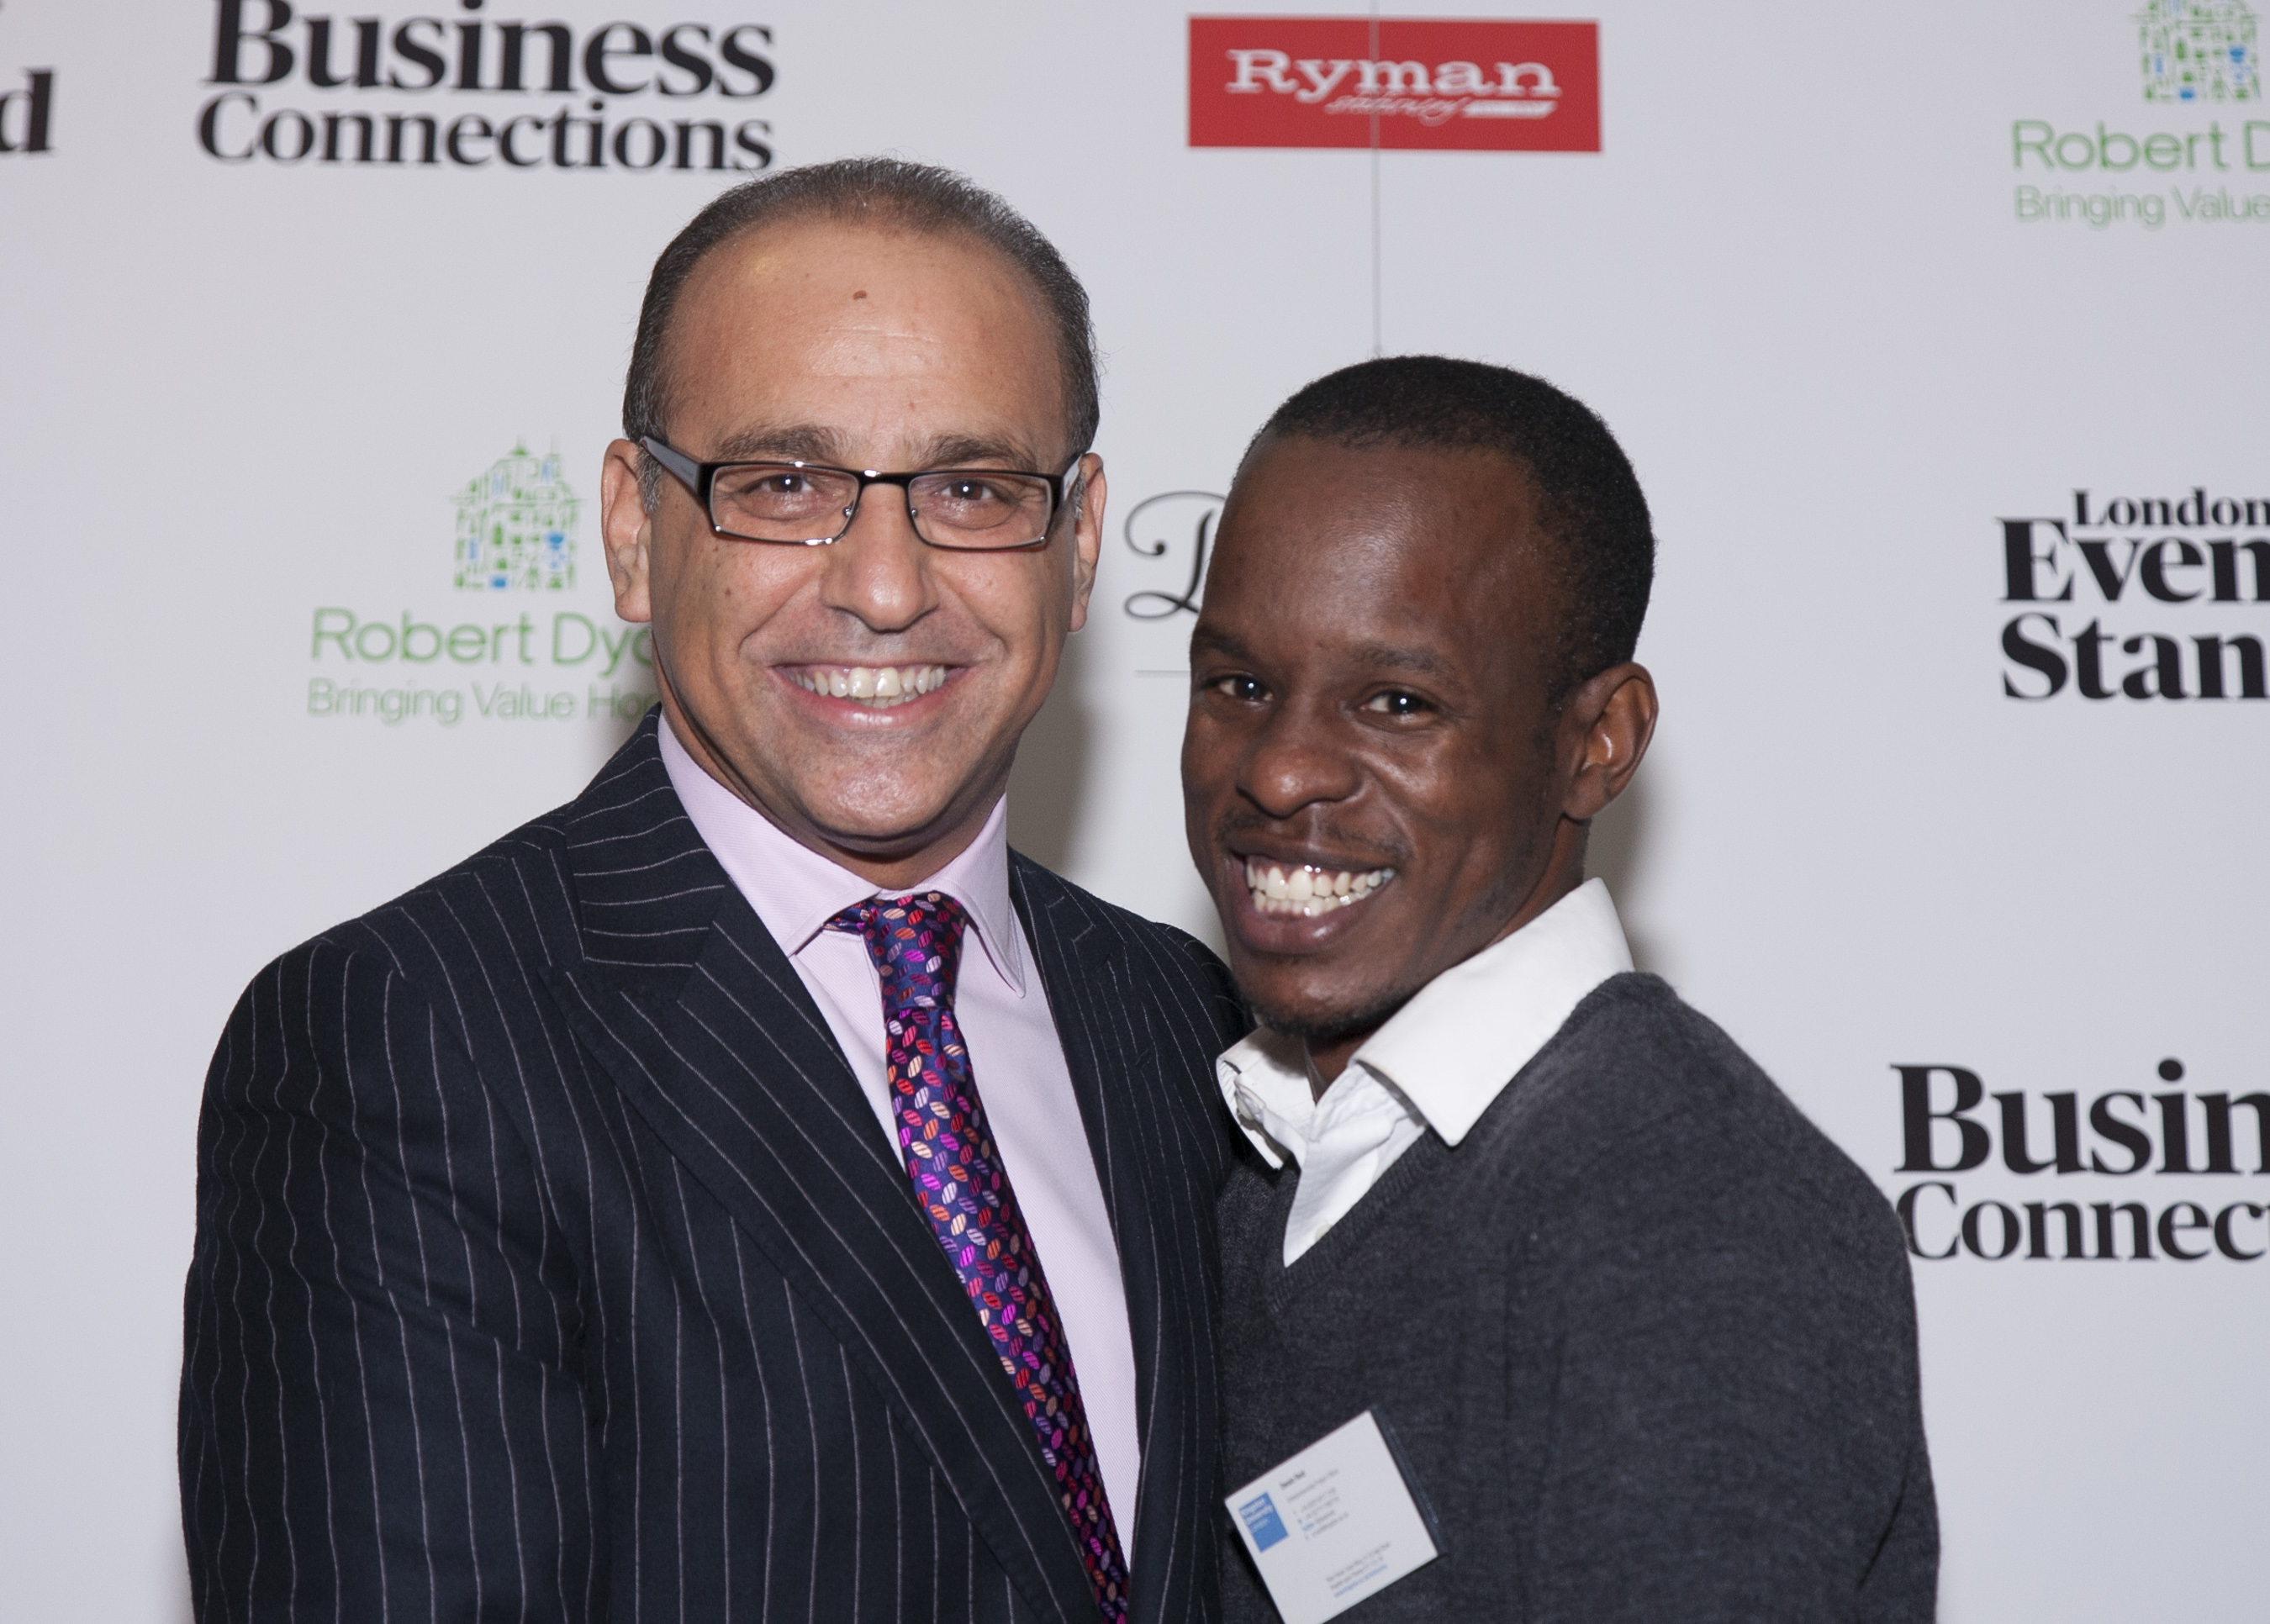 Dwain-with-Theo-Paphitis-Evening-Standard-Business-Connections